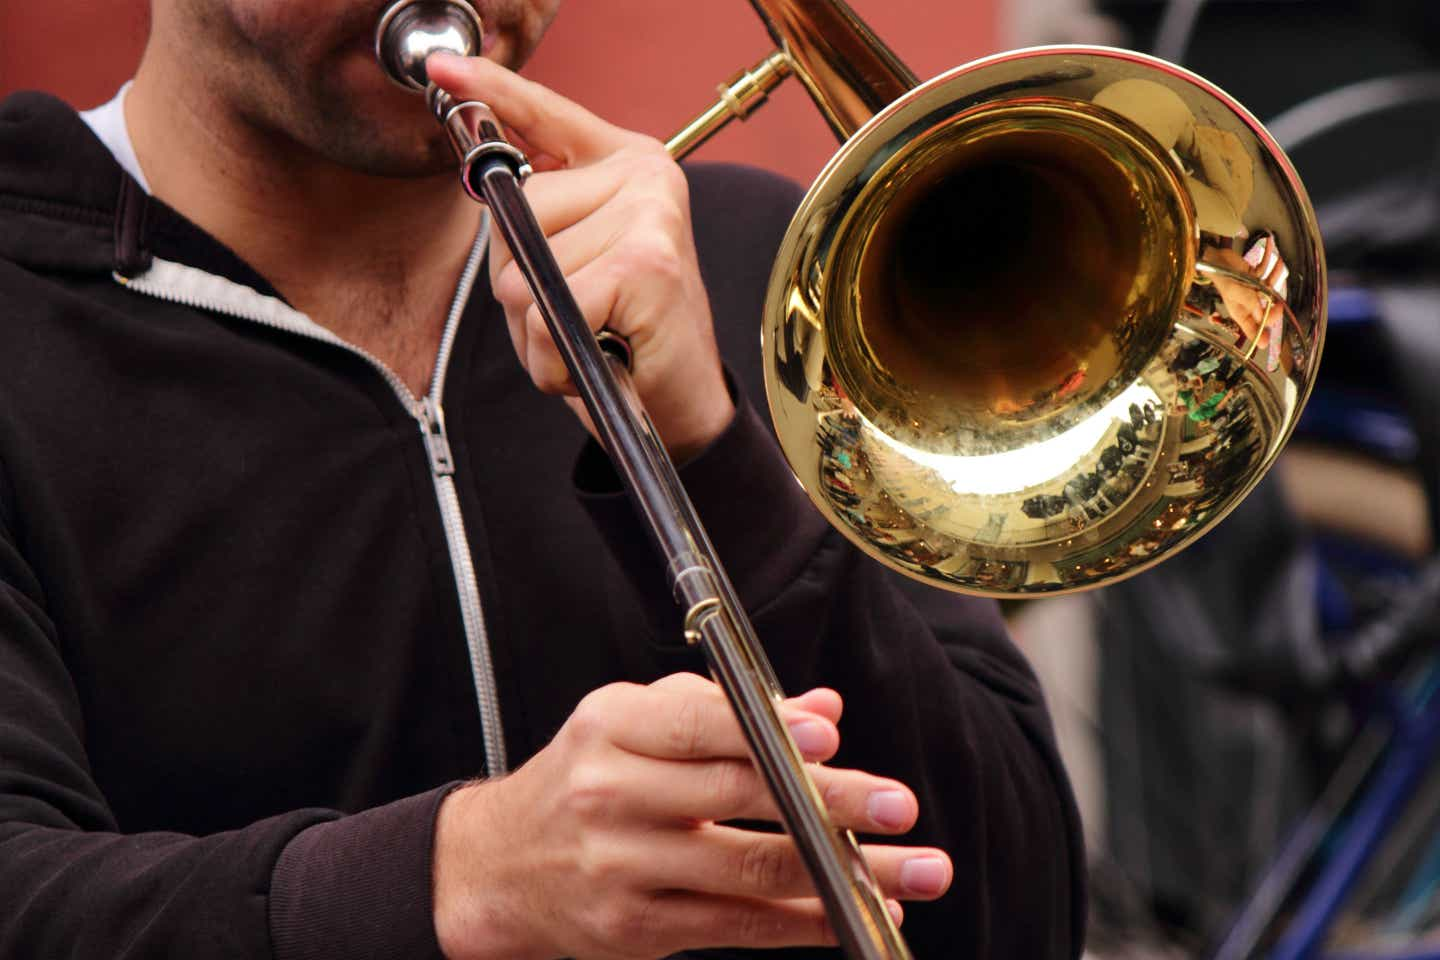 Jazz performer wearing a black zip-up hoodie plays a gold trombone on the streets of New Orleans.